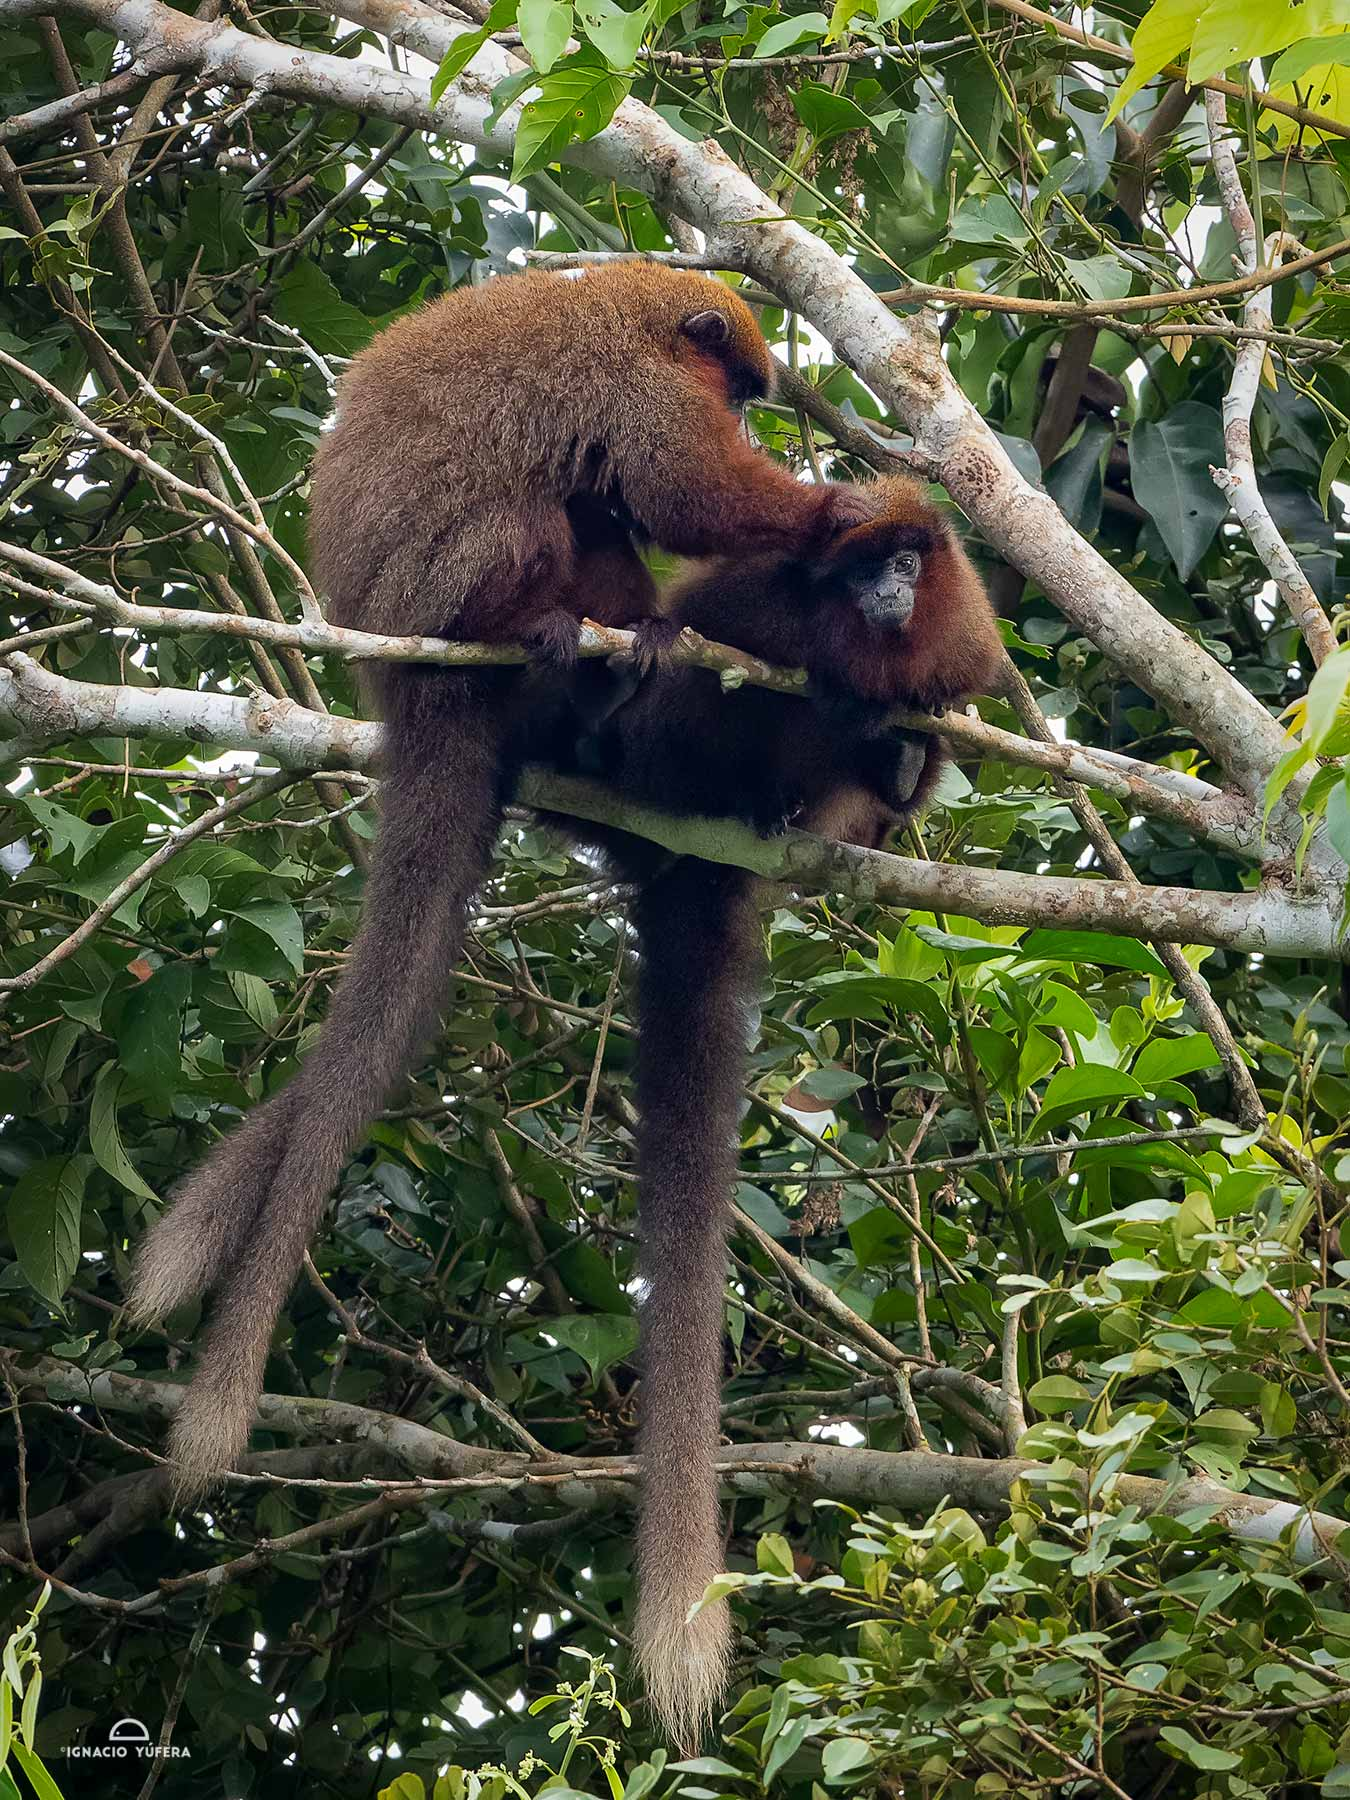 Brown Titi Monkeys (Plecturocebus brunneus), in mutual grooming, Madre de Dios, Peru